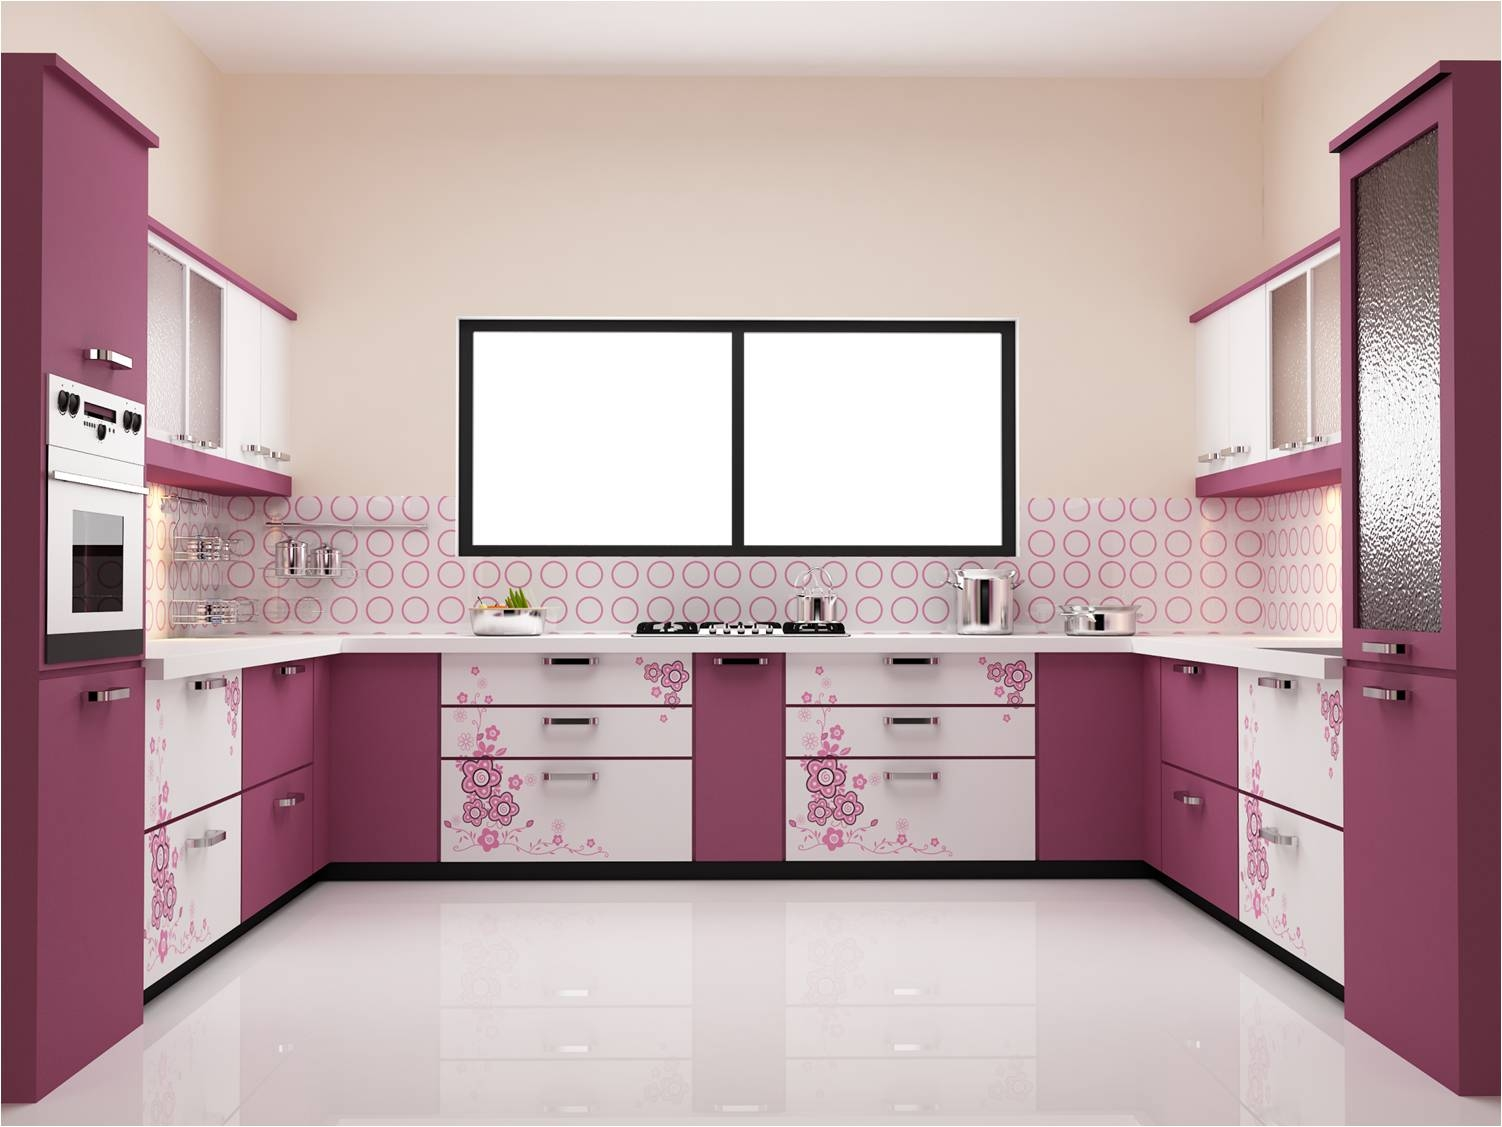 Permalink to Designs Of Modular Kitchen Cabinets